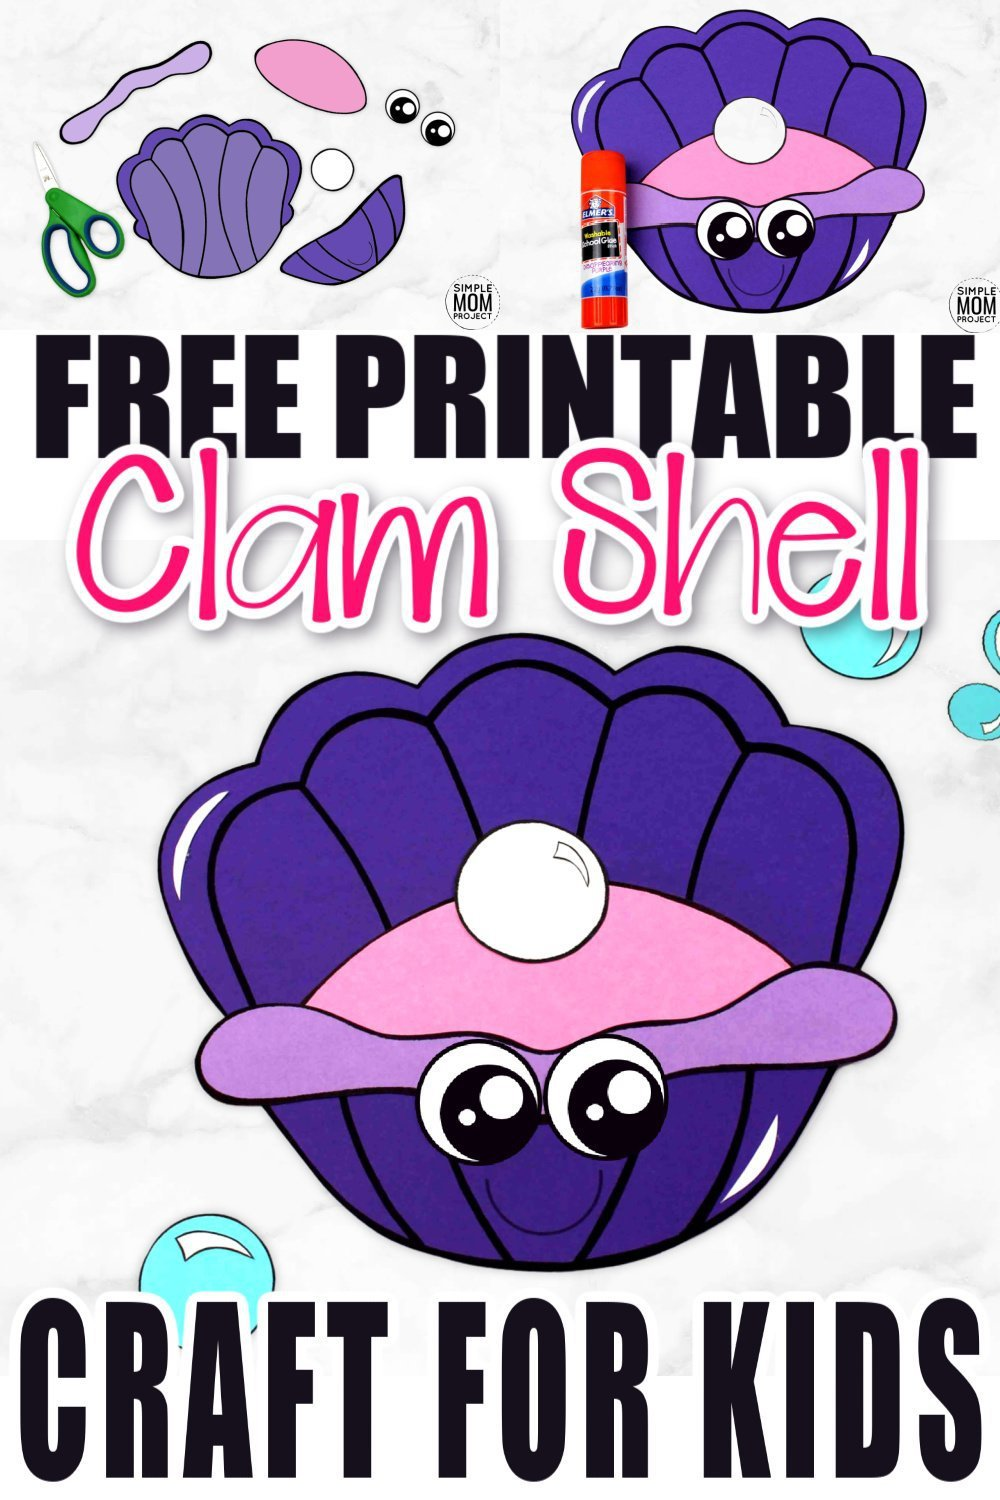 Whether you are taking a trip to the beach or learning about seashells, this adorable clam shell, free printable craft is for you! Use the clam template during summer vacation, at home, or in the classroom during your under the sea unit or ocean theme! #clamcrafts #clamshellcrafts #oceananimalcrafts #oceananimals